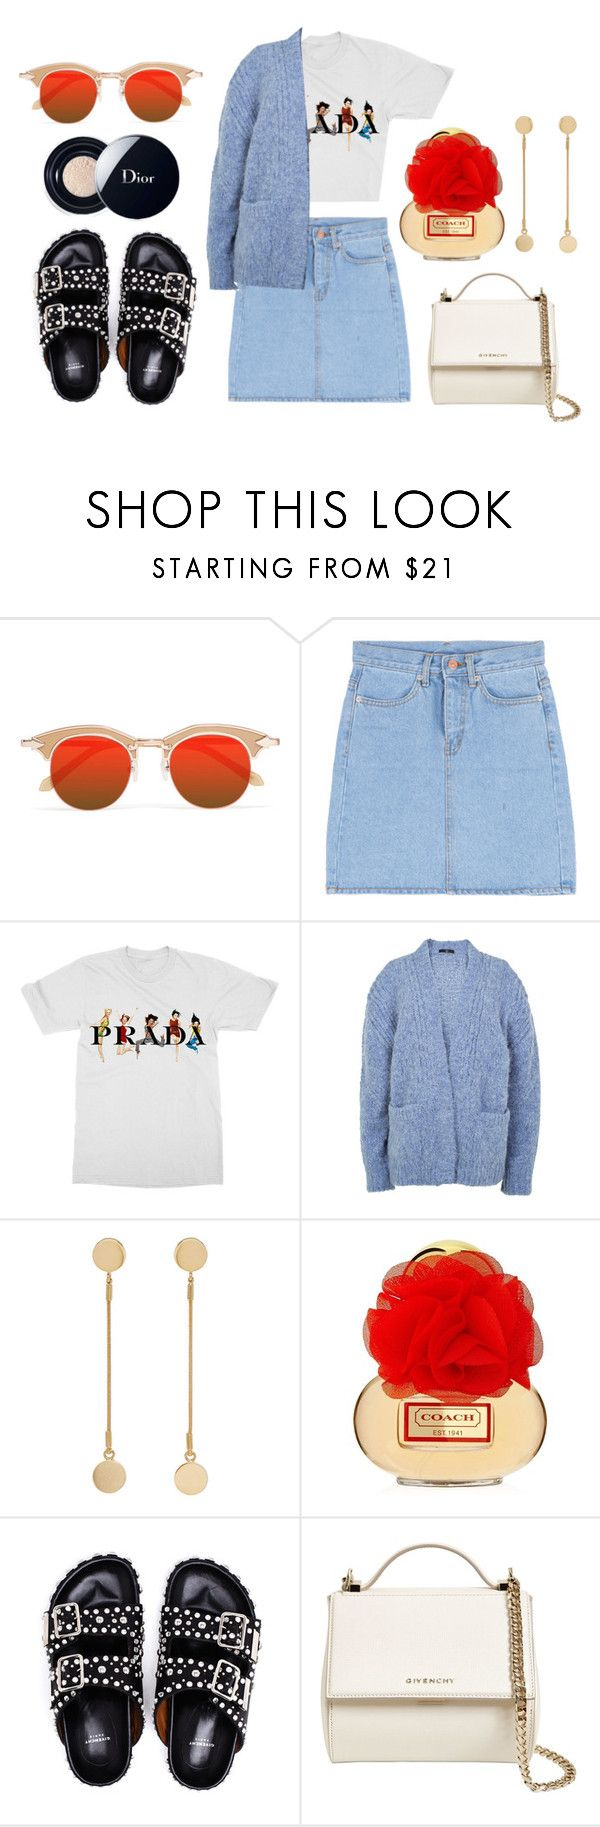 """""""Luca"""" by hannahshay ❤ liked on Polyvore featuring Karen Walker, Prada, TIBI, Isabel Marant, Givenchy and Christian Dior"""